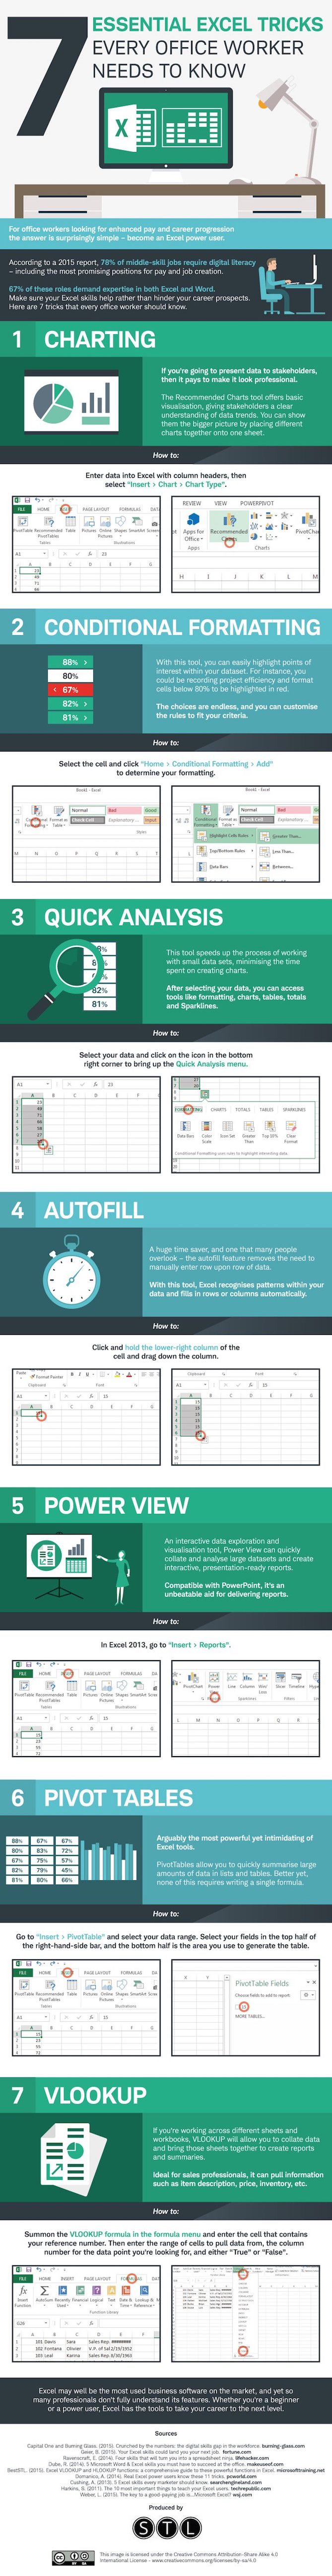 7 Essential Excel Tricks Every Office Worker Needs to Know [Infographic], via @HubSpot